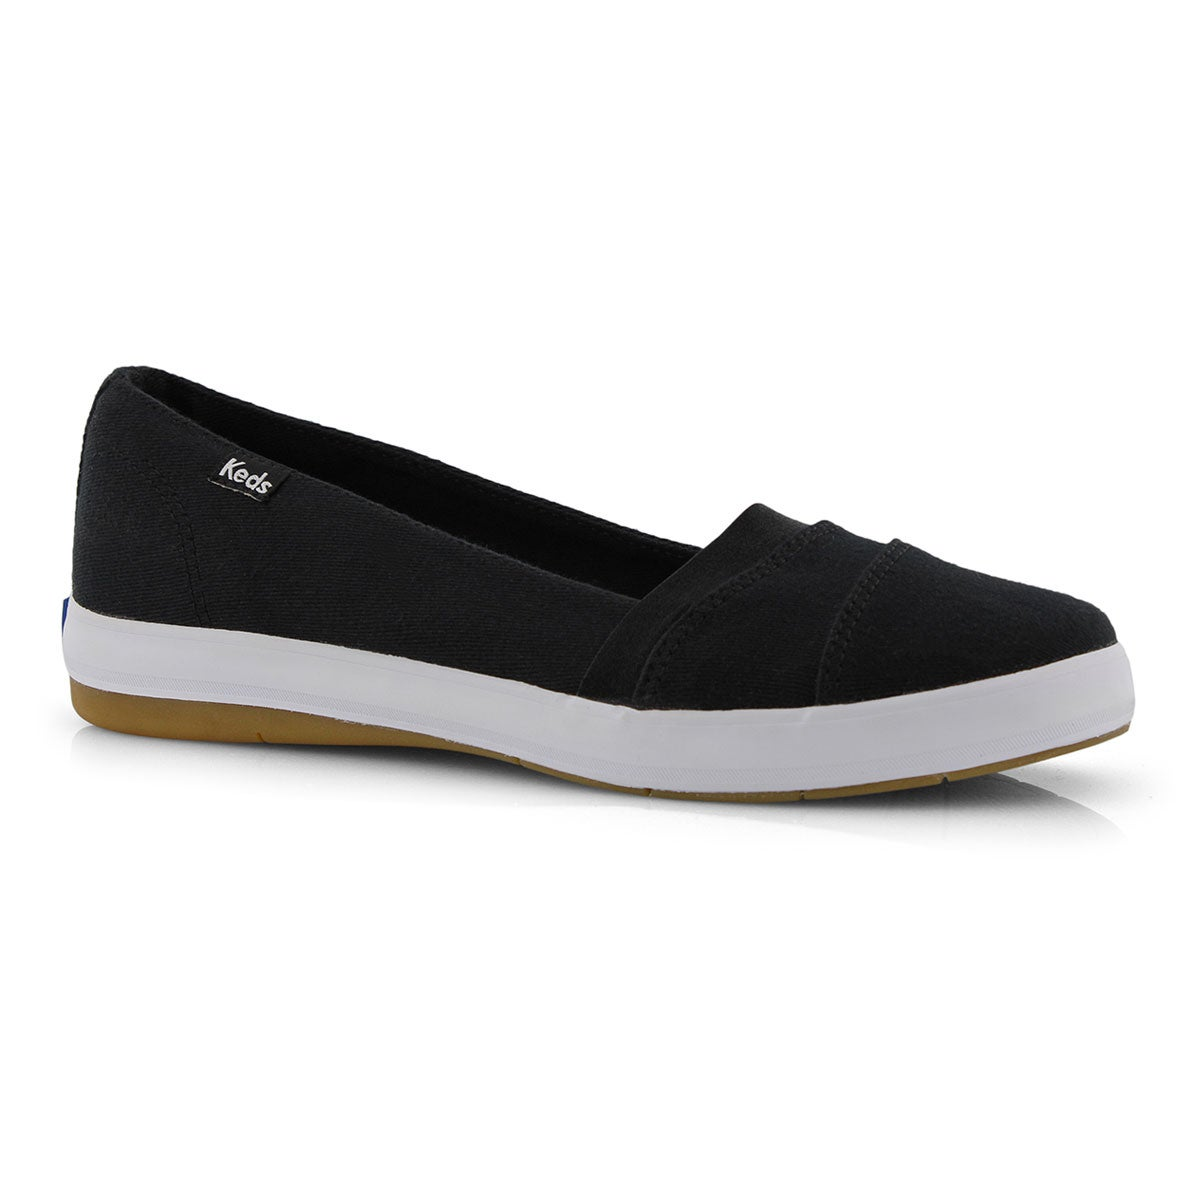 Lds Carmel Twill black slip on shoe